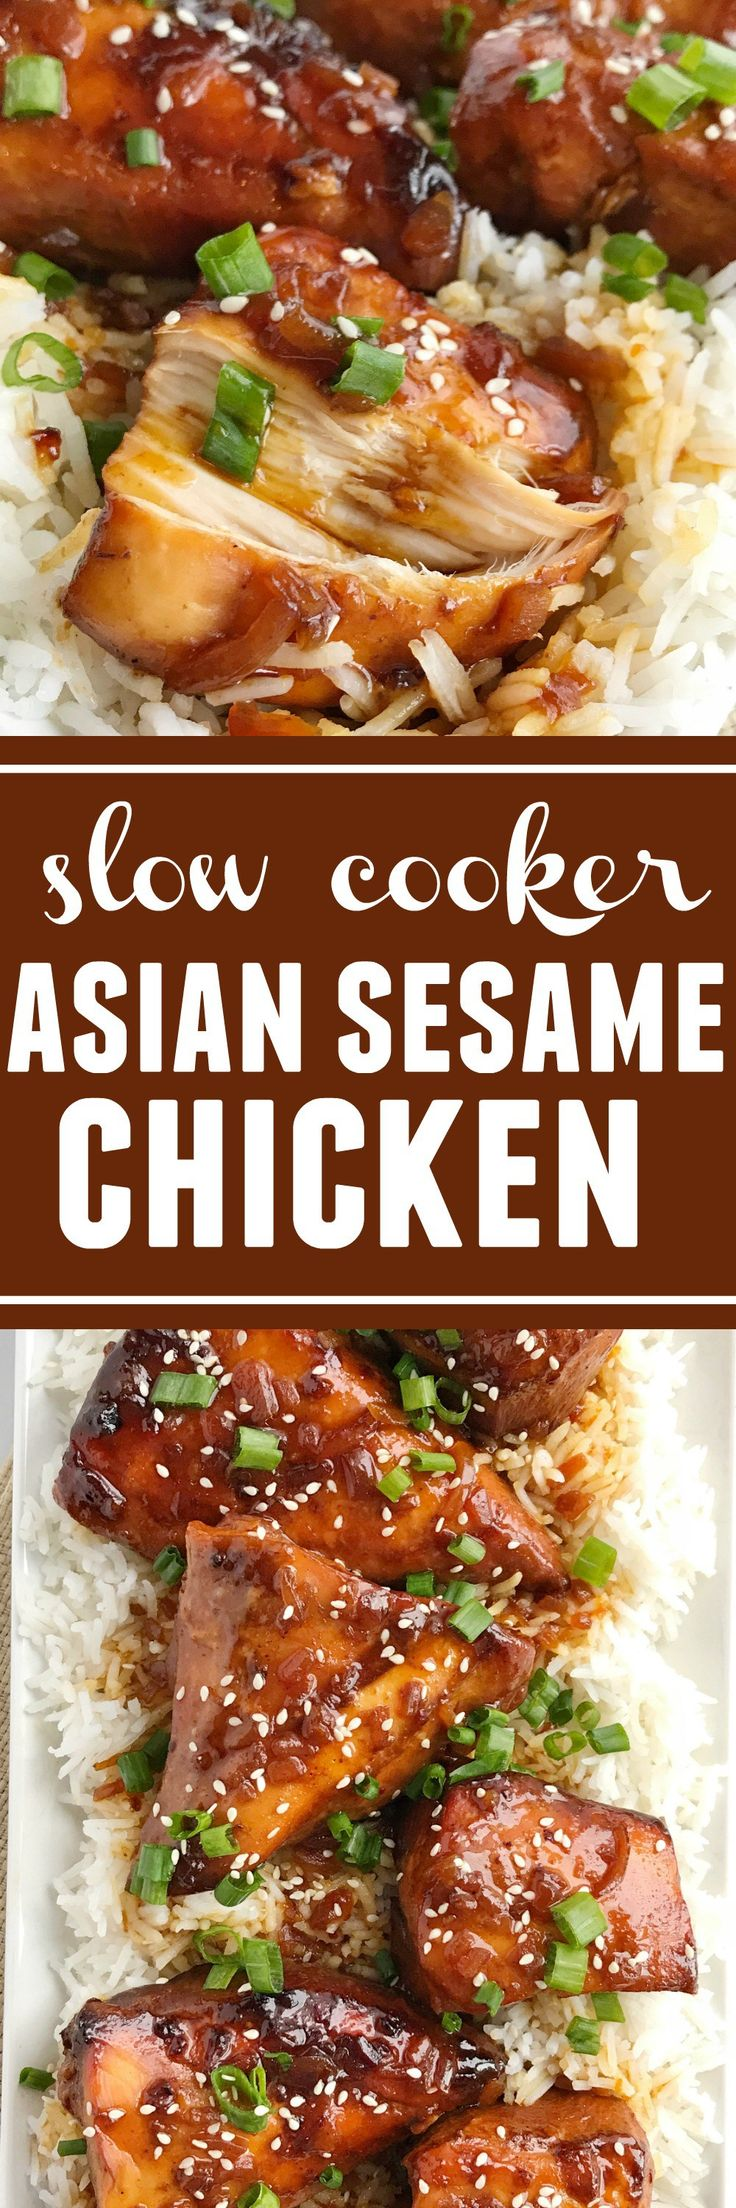 4 Ingredient Slow Cooker Asian Sesame Chicken recipe.